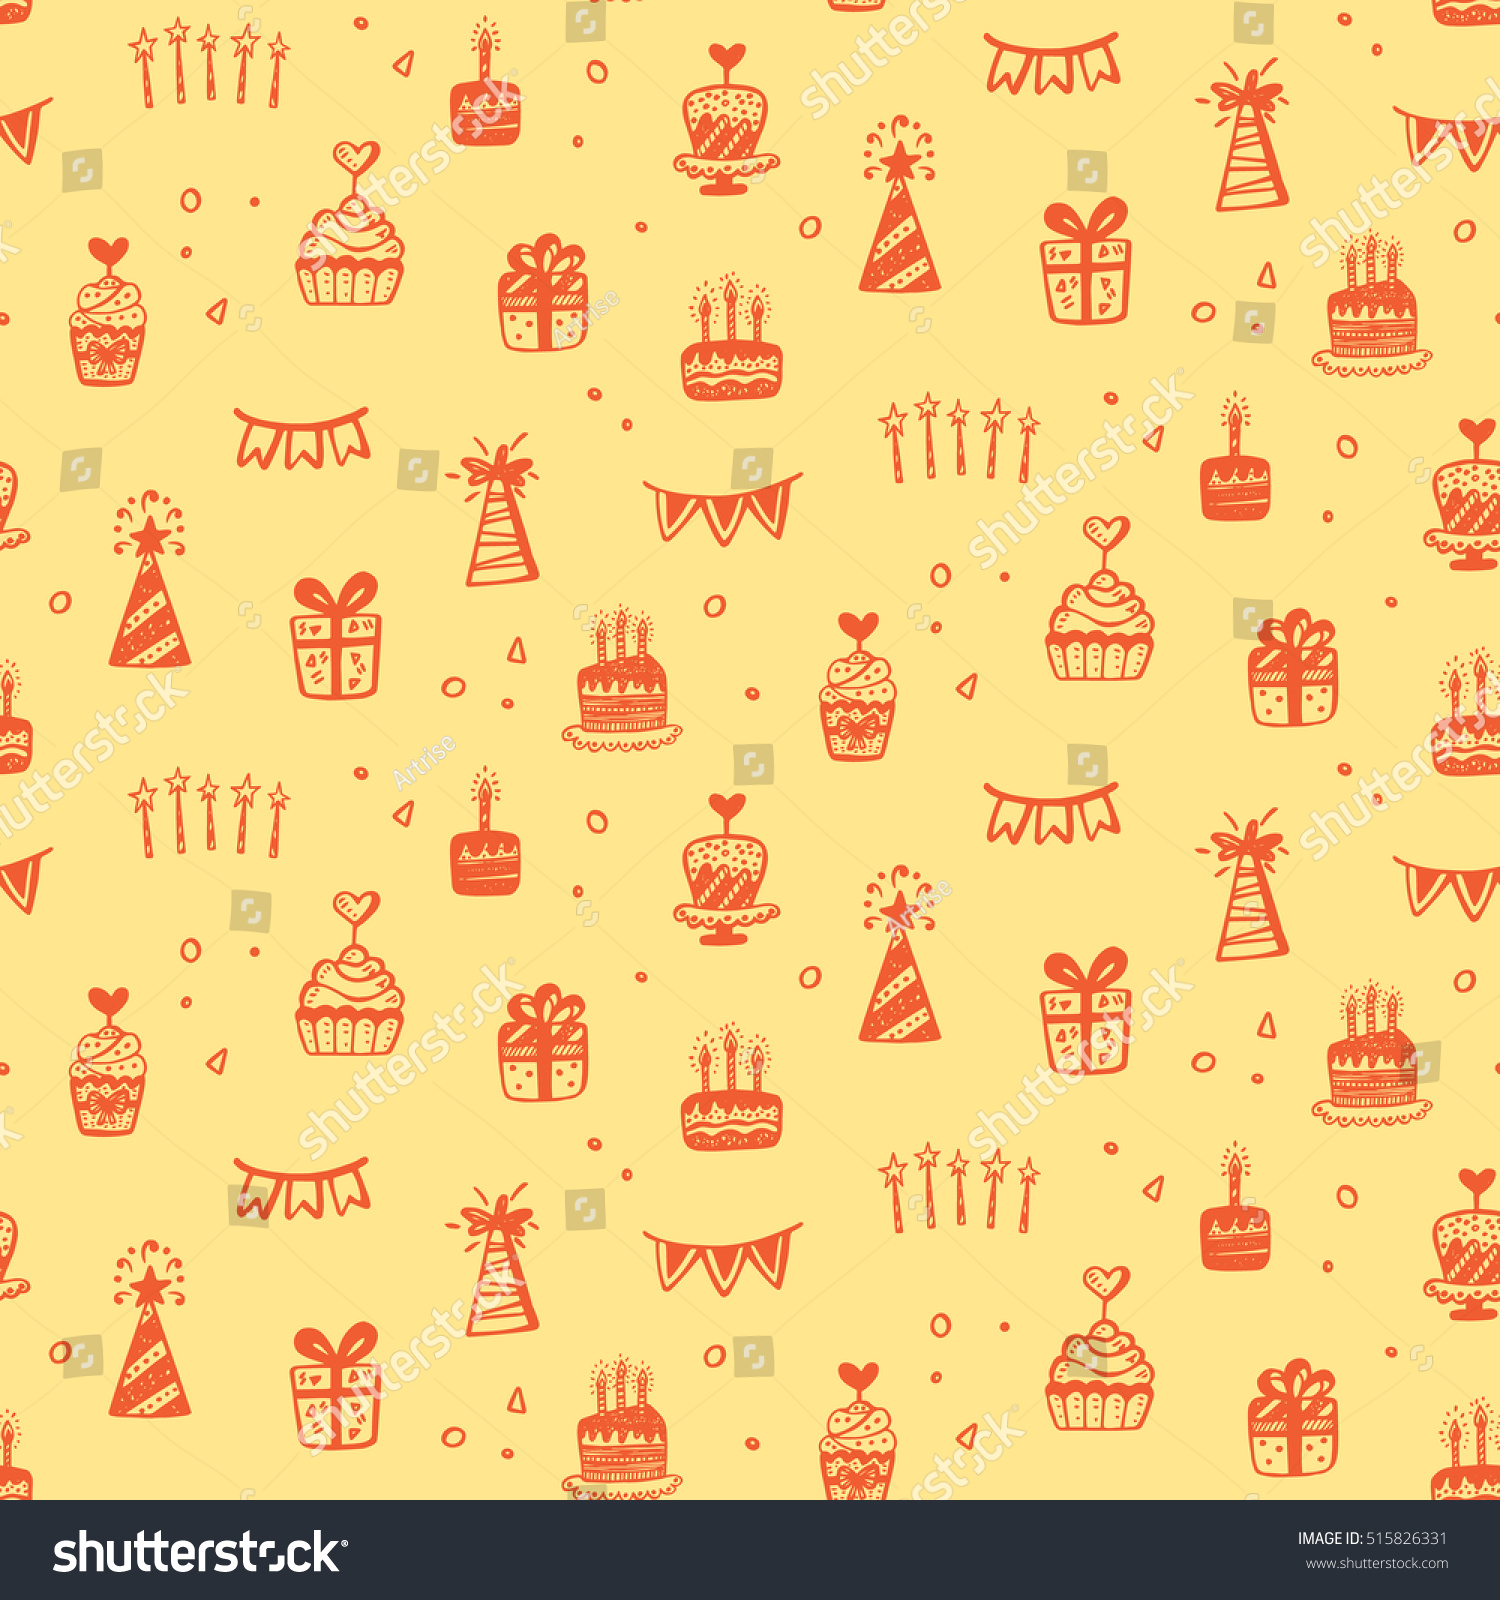 Birthday Party Seamless Patterns Hand Drawn Stock Vector 515826331